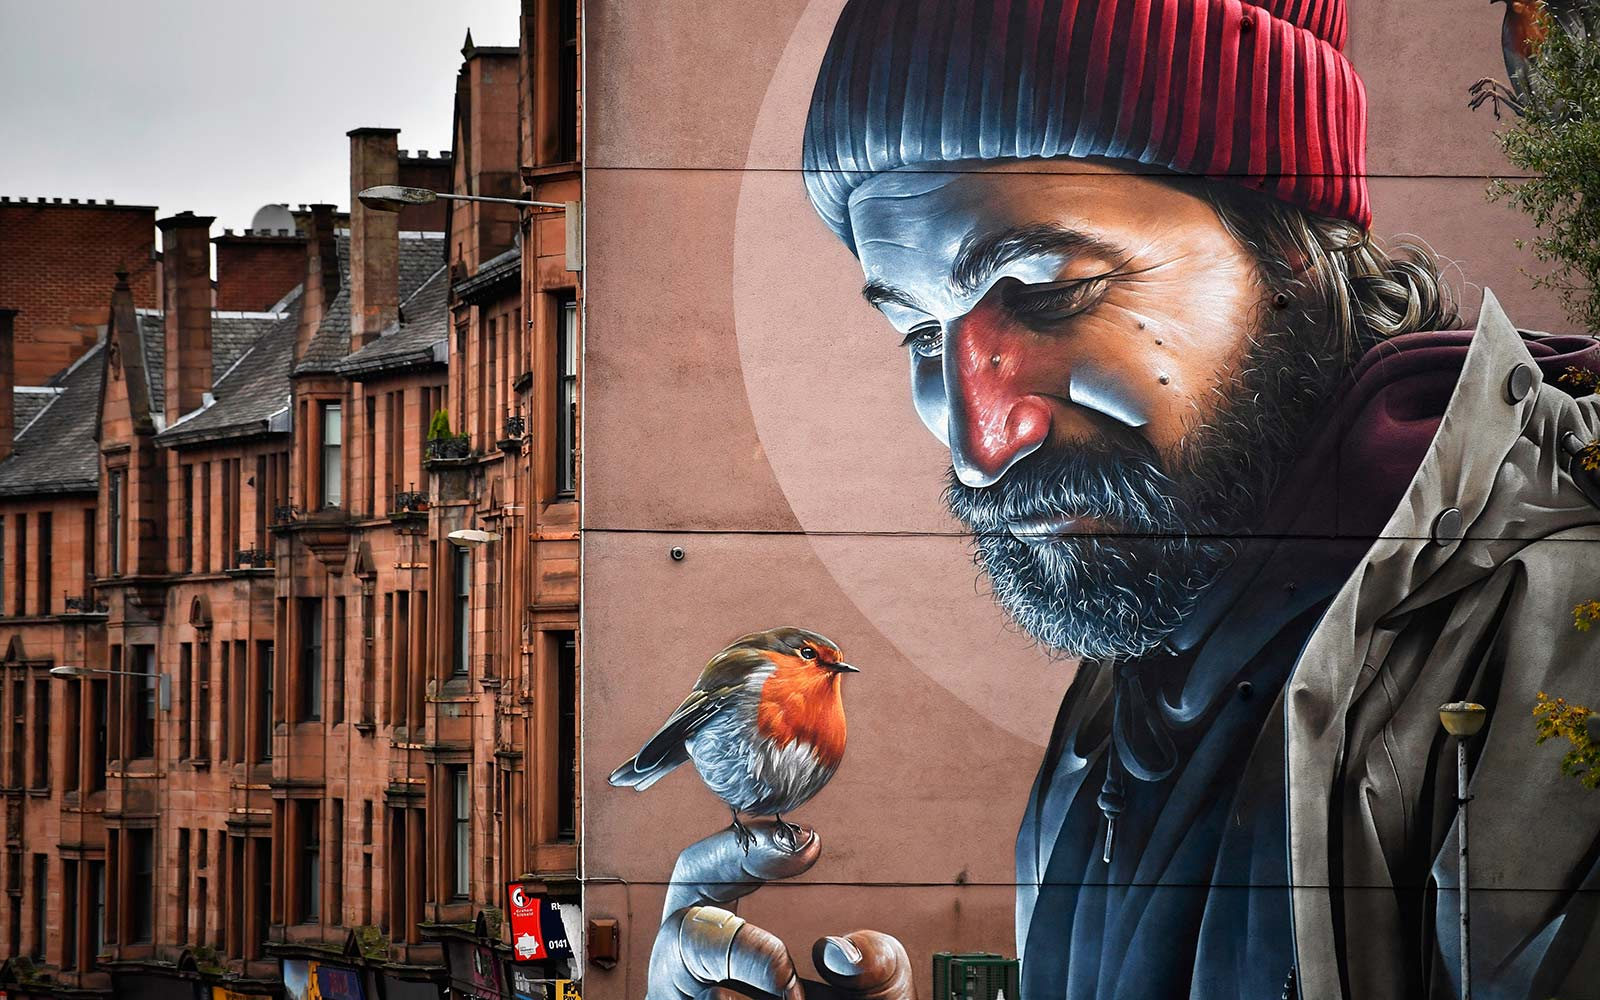 Glasgow's New Mural Trail Creates Walking Tour of City's Stunning Street Art